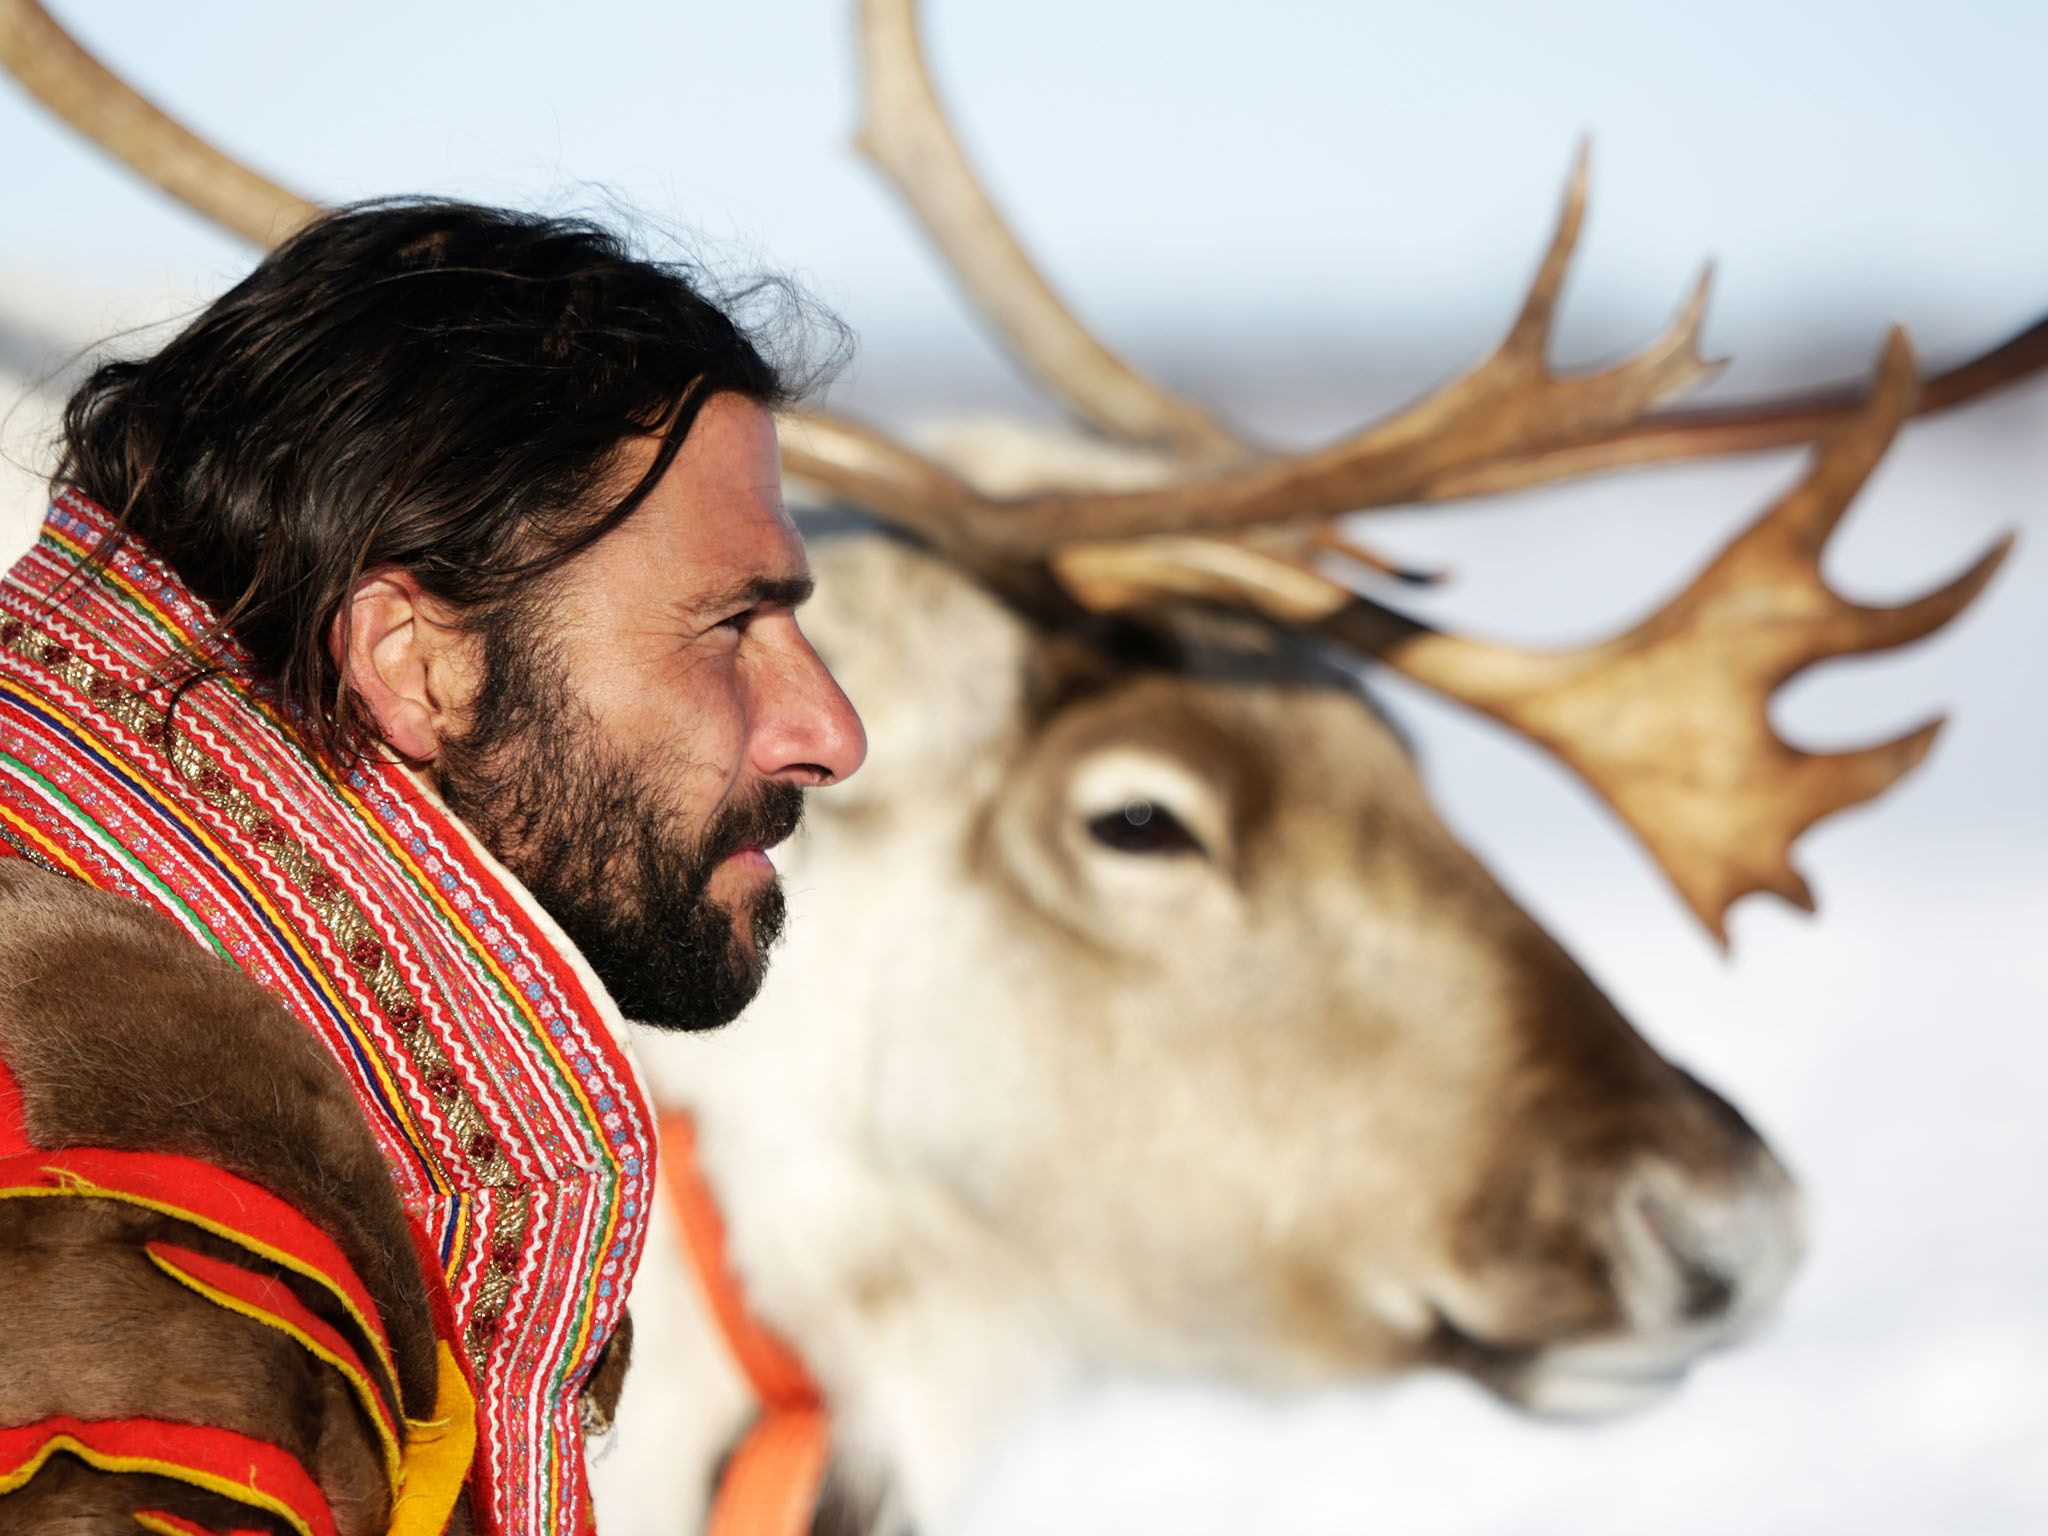 Norway: Hazen with his reindeer stag. This image is from Primal Survivor. [Photo of the day - January 2016]